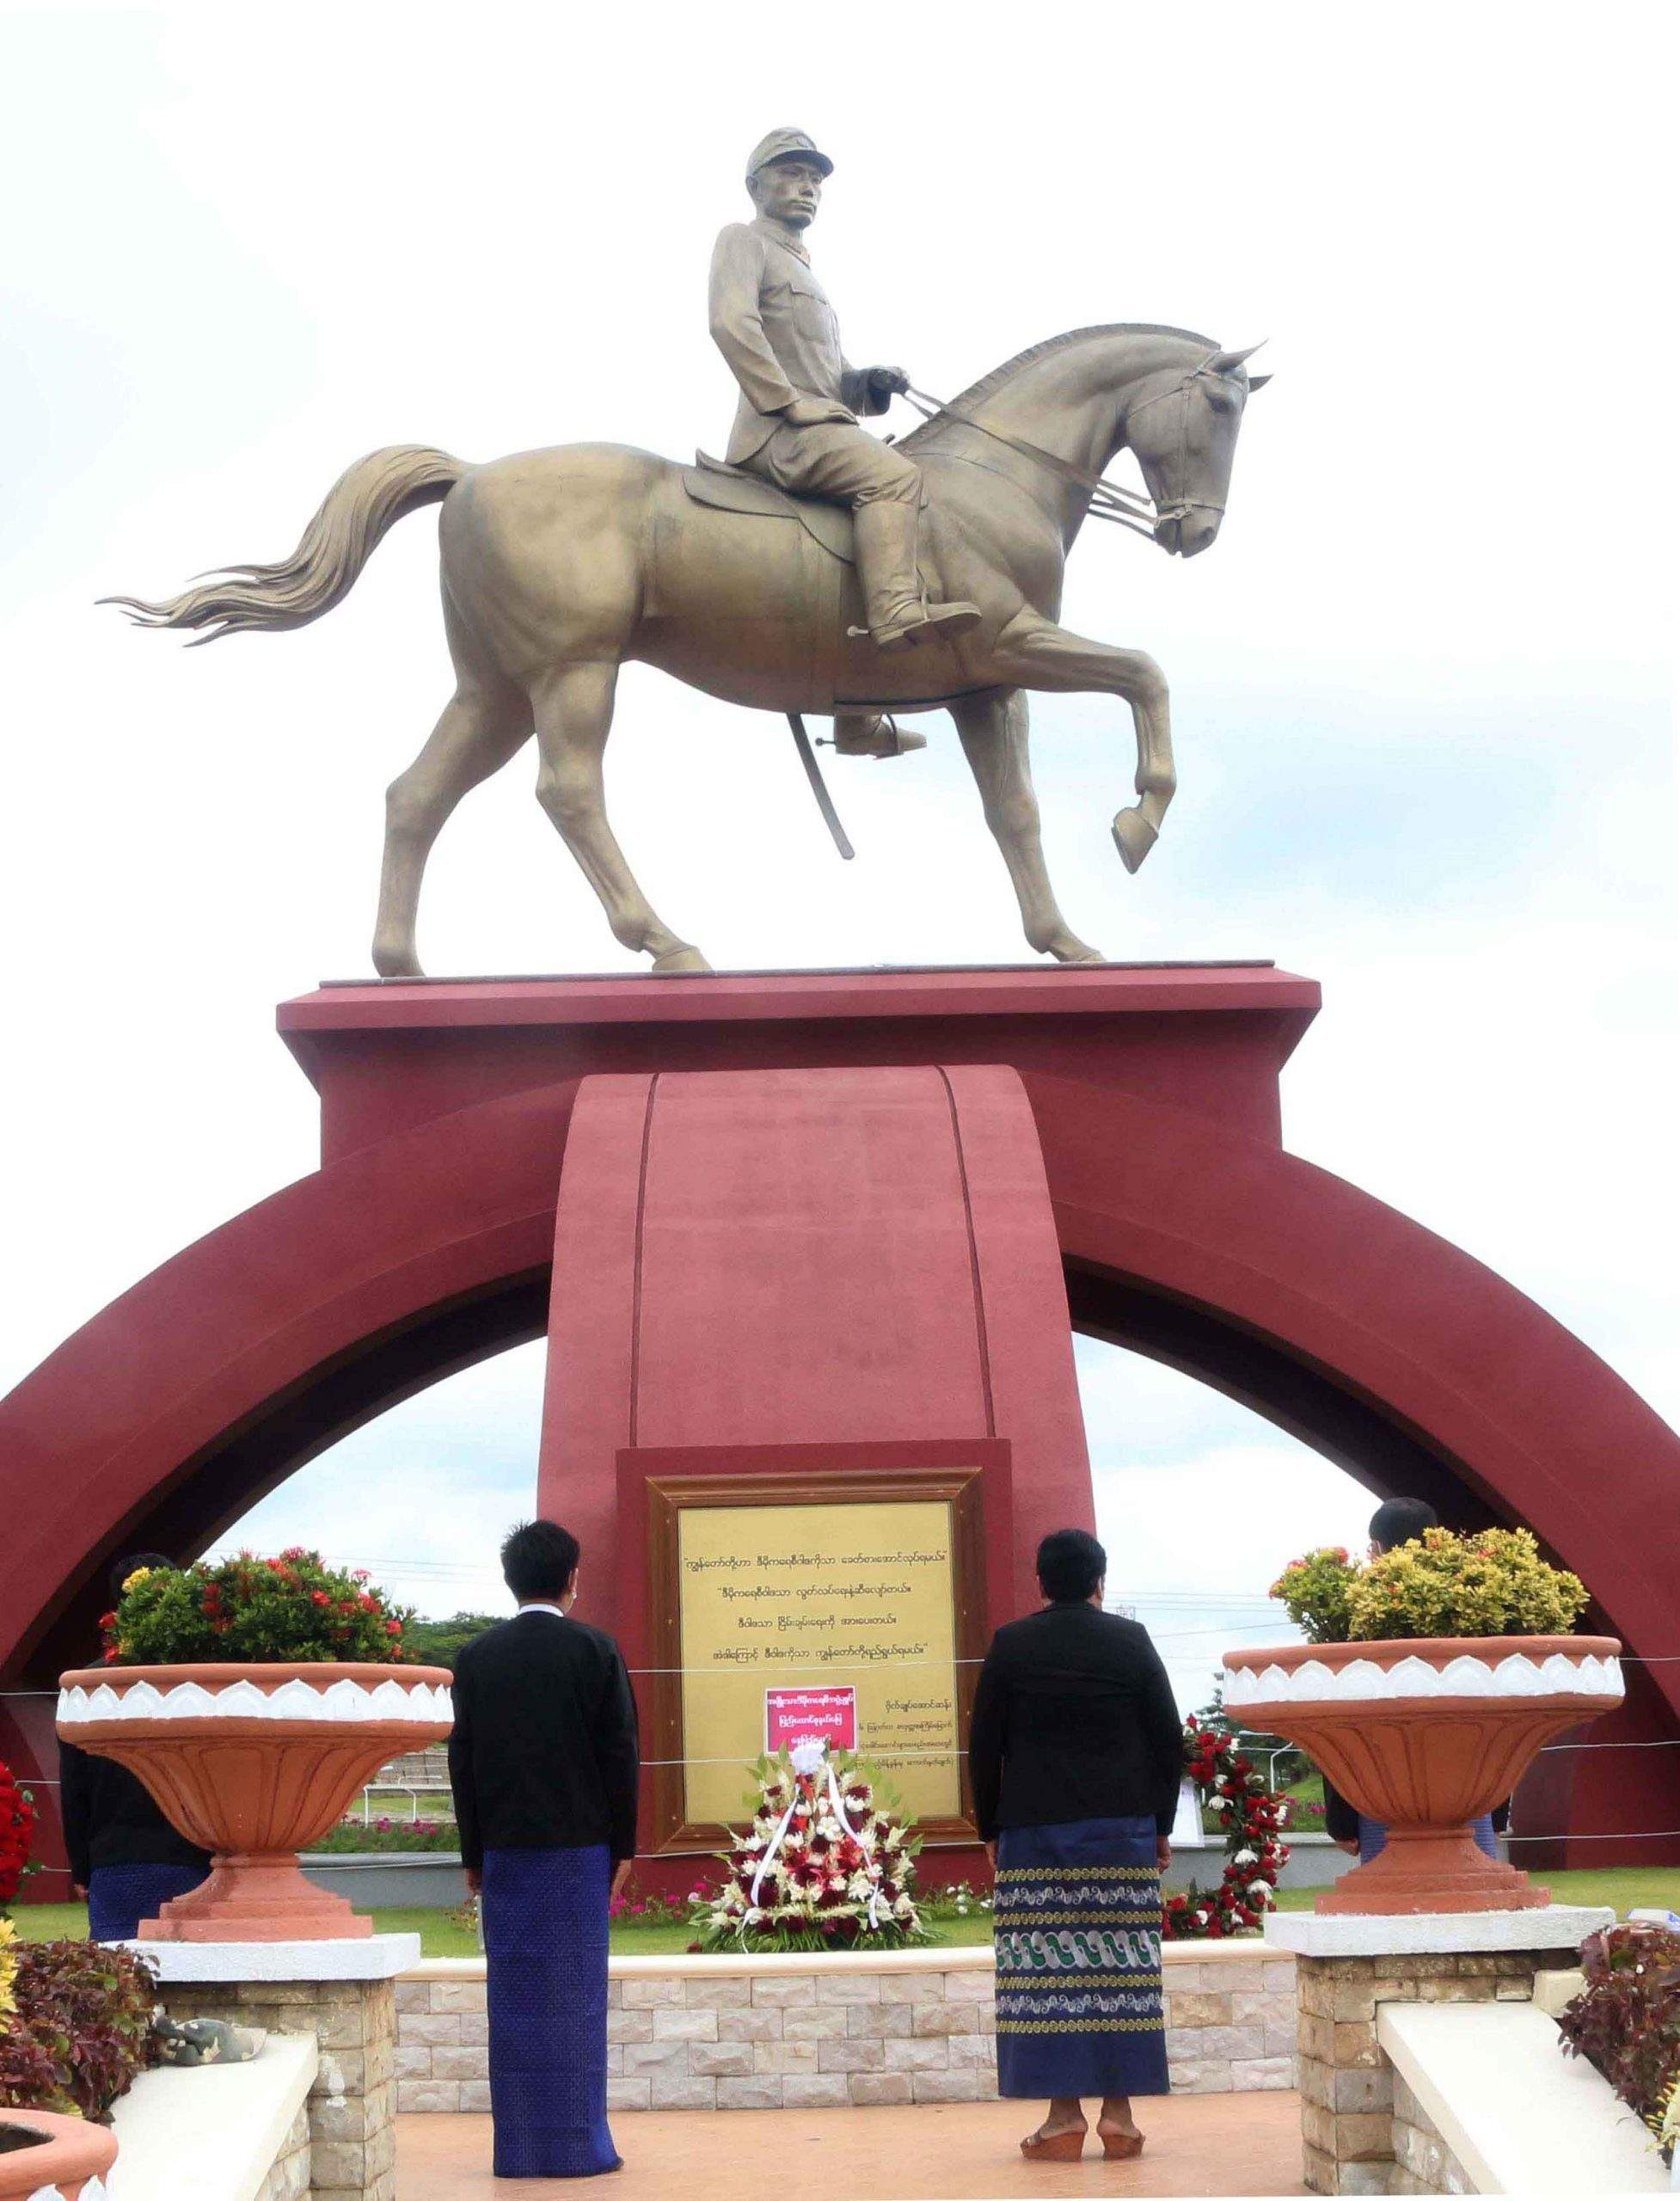 The 73rd Anniversary of Martyrs' Day is commenmorated at the Bogyoke Aung San Bronze Statue in Nay Pyi Taw on 19 July 2020. PHOTO: Chat gyi